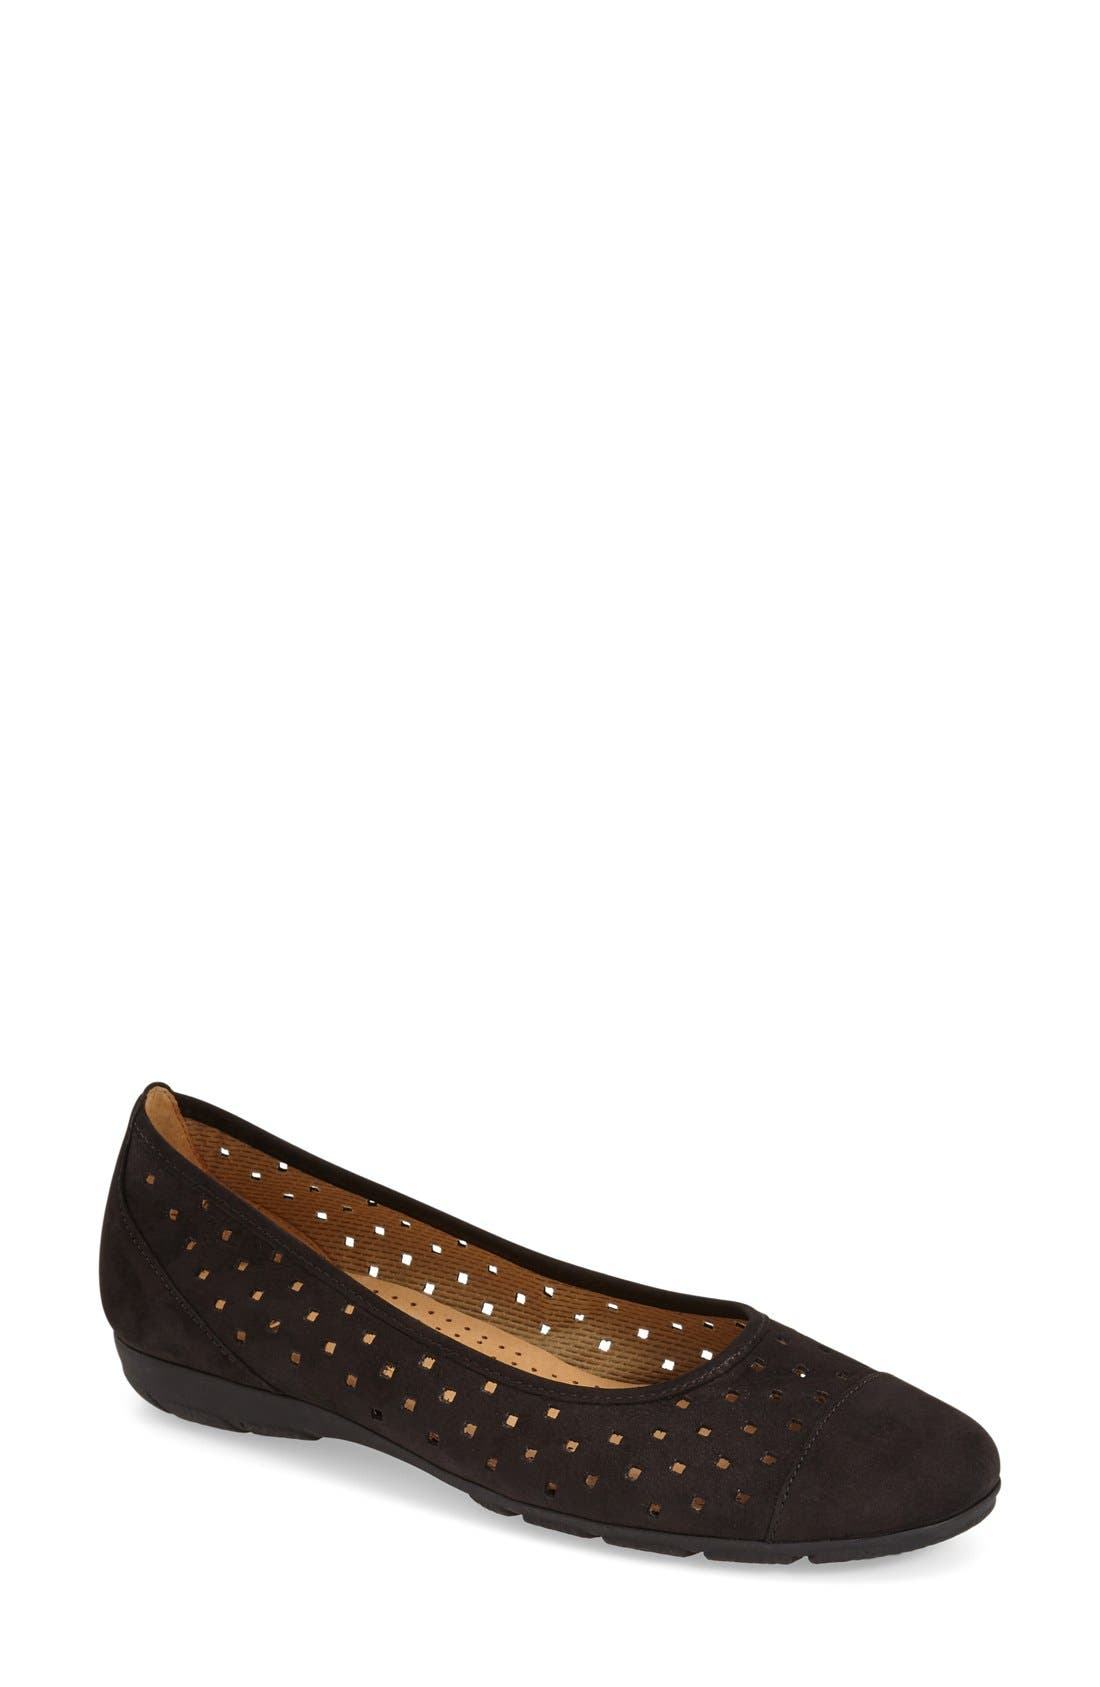 Gabor Perforated Ballet Flat (Women)